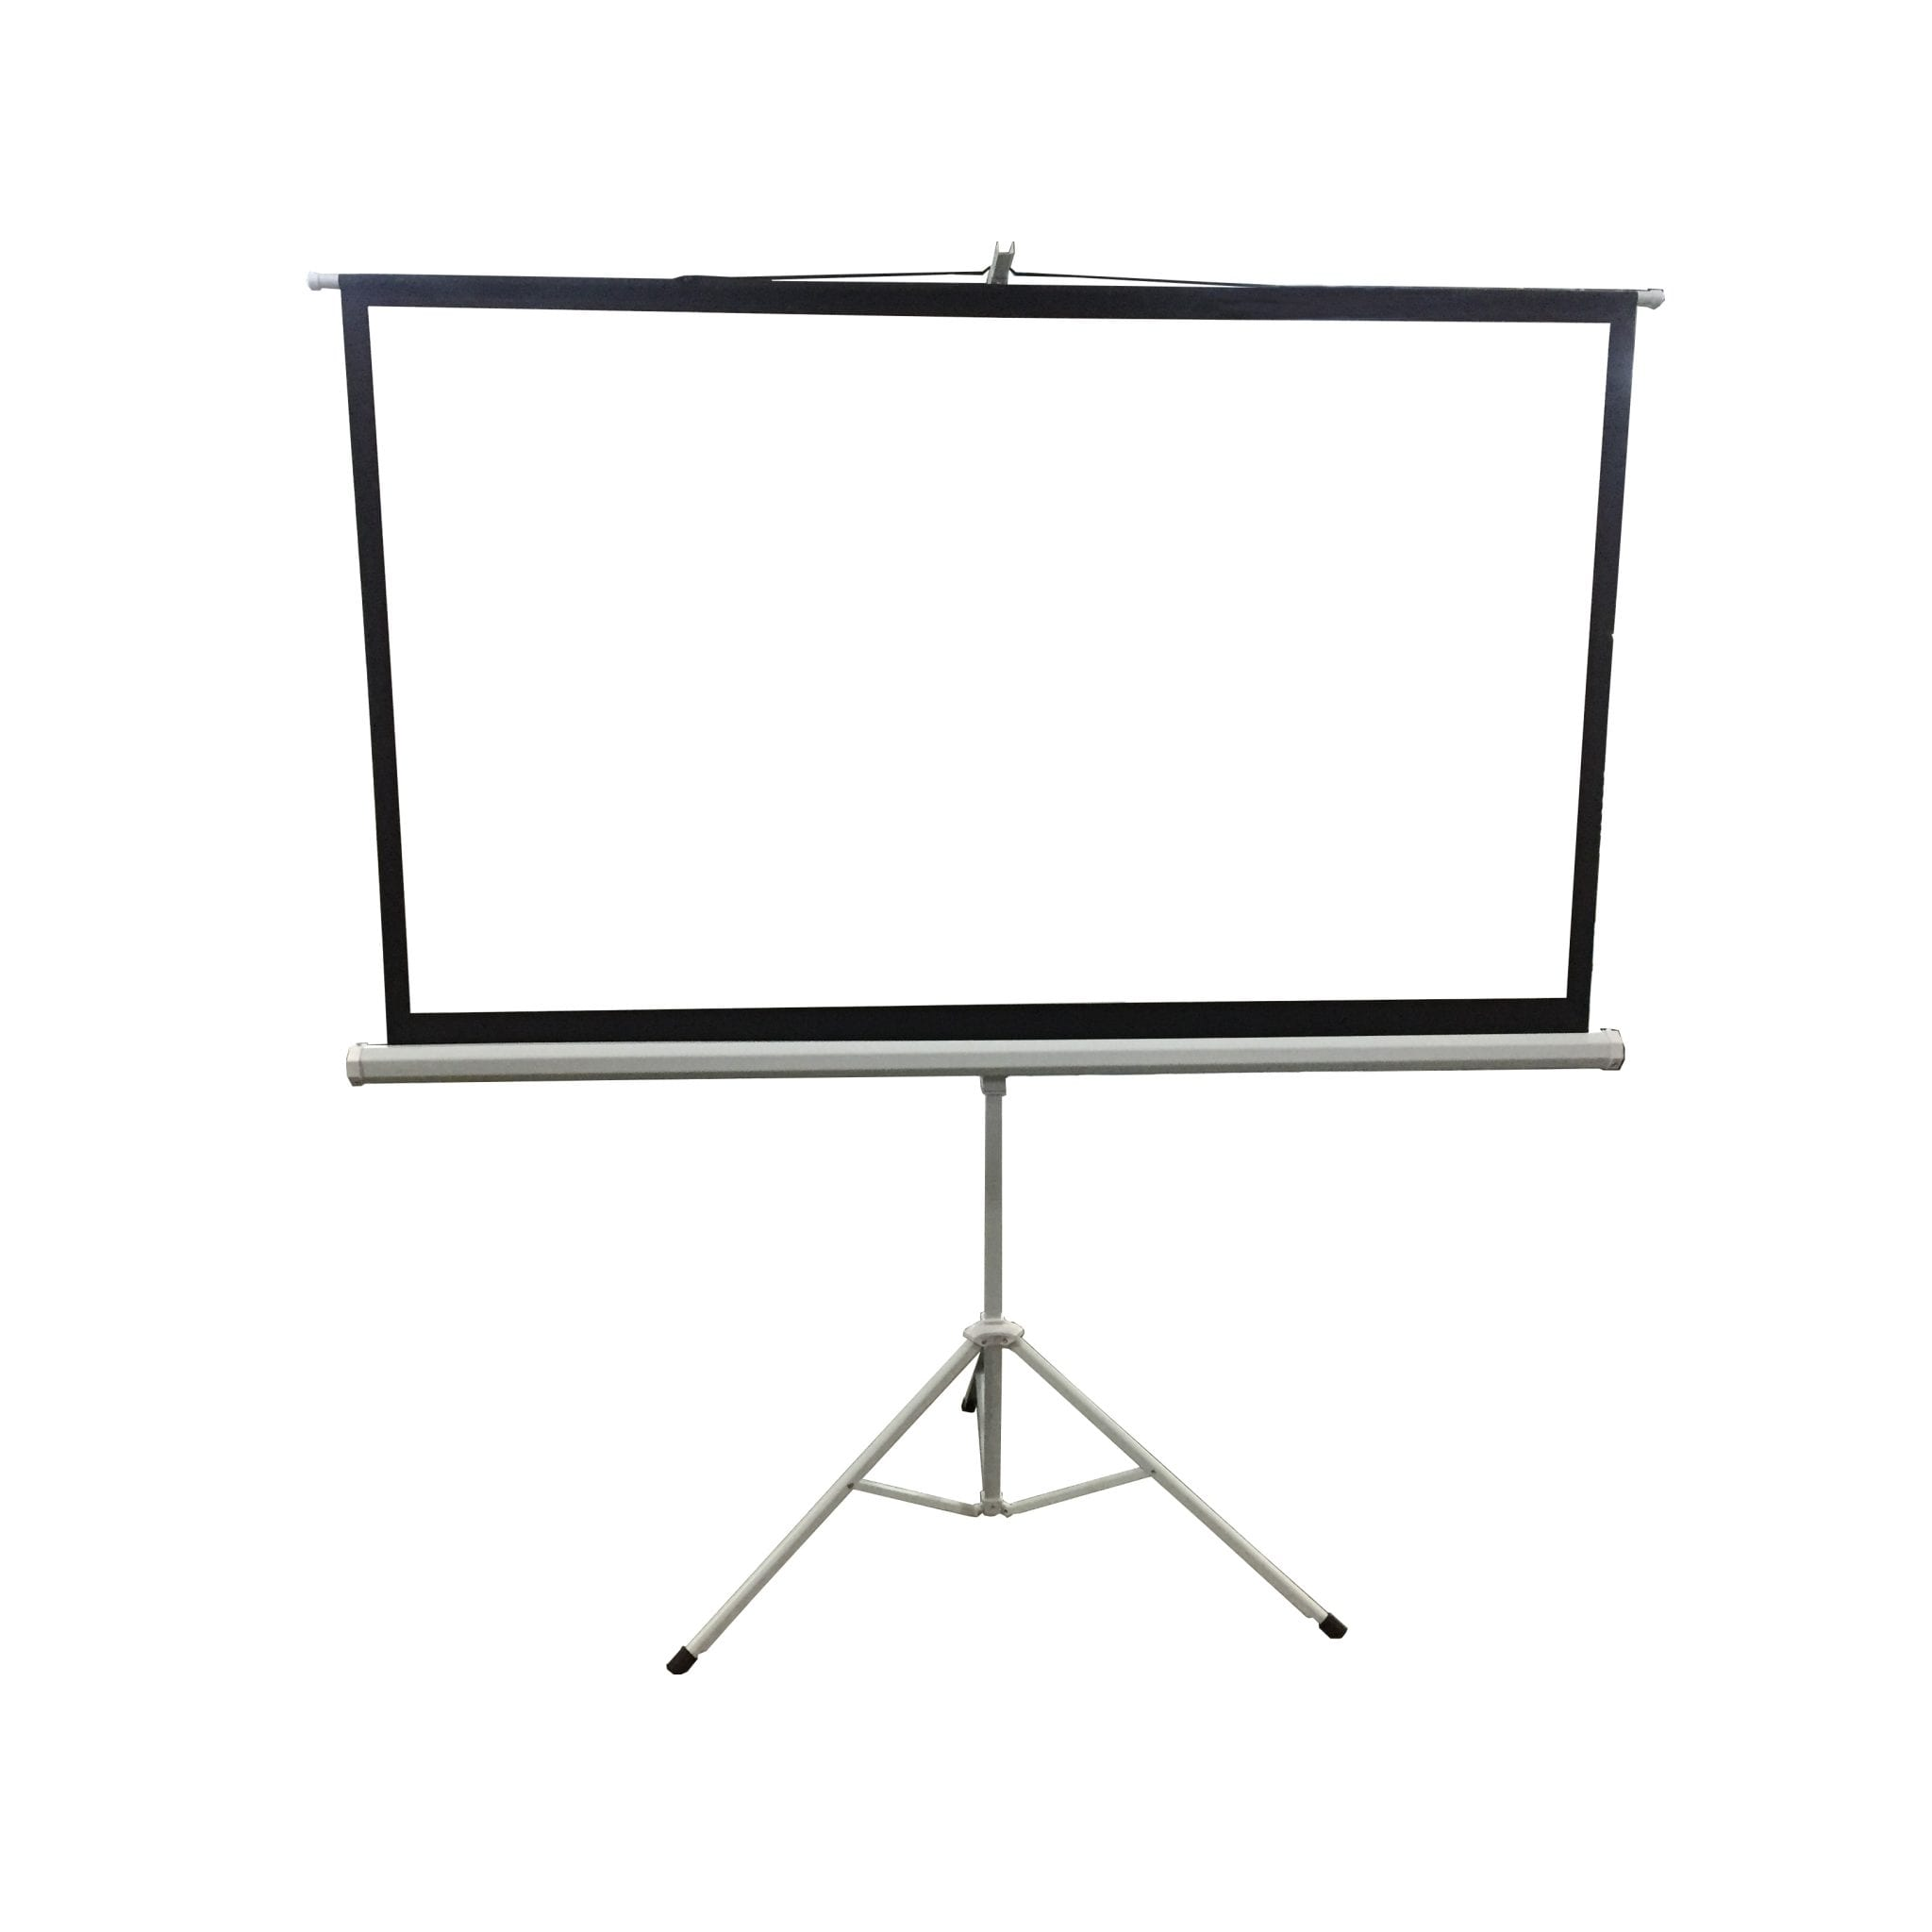 AVTMM-Series Portable Tripod Projector Screens